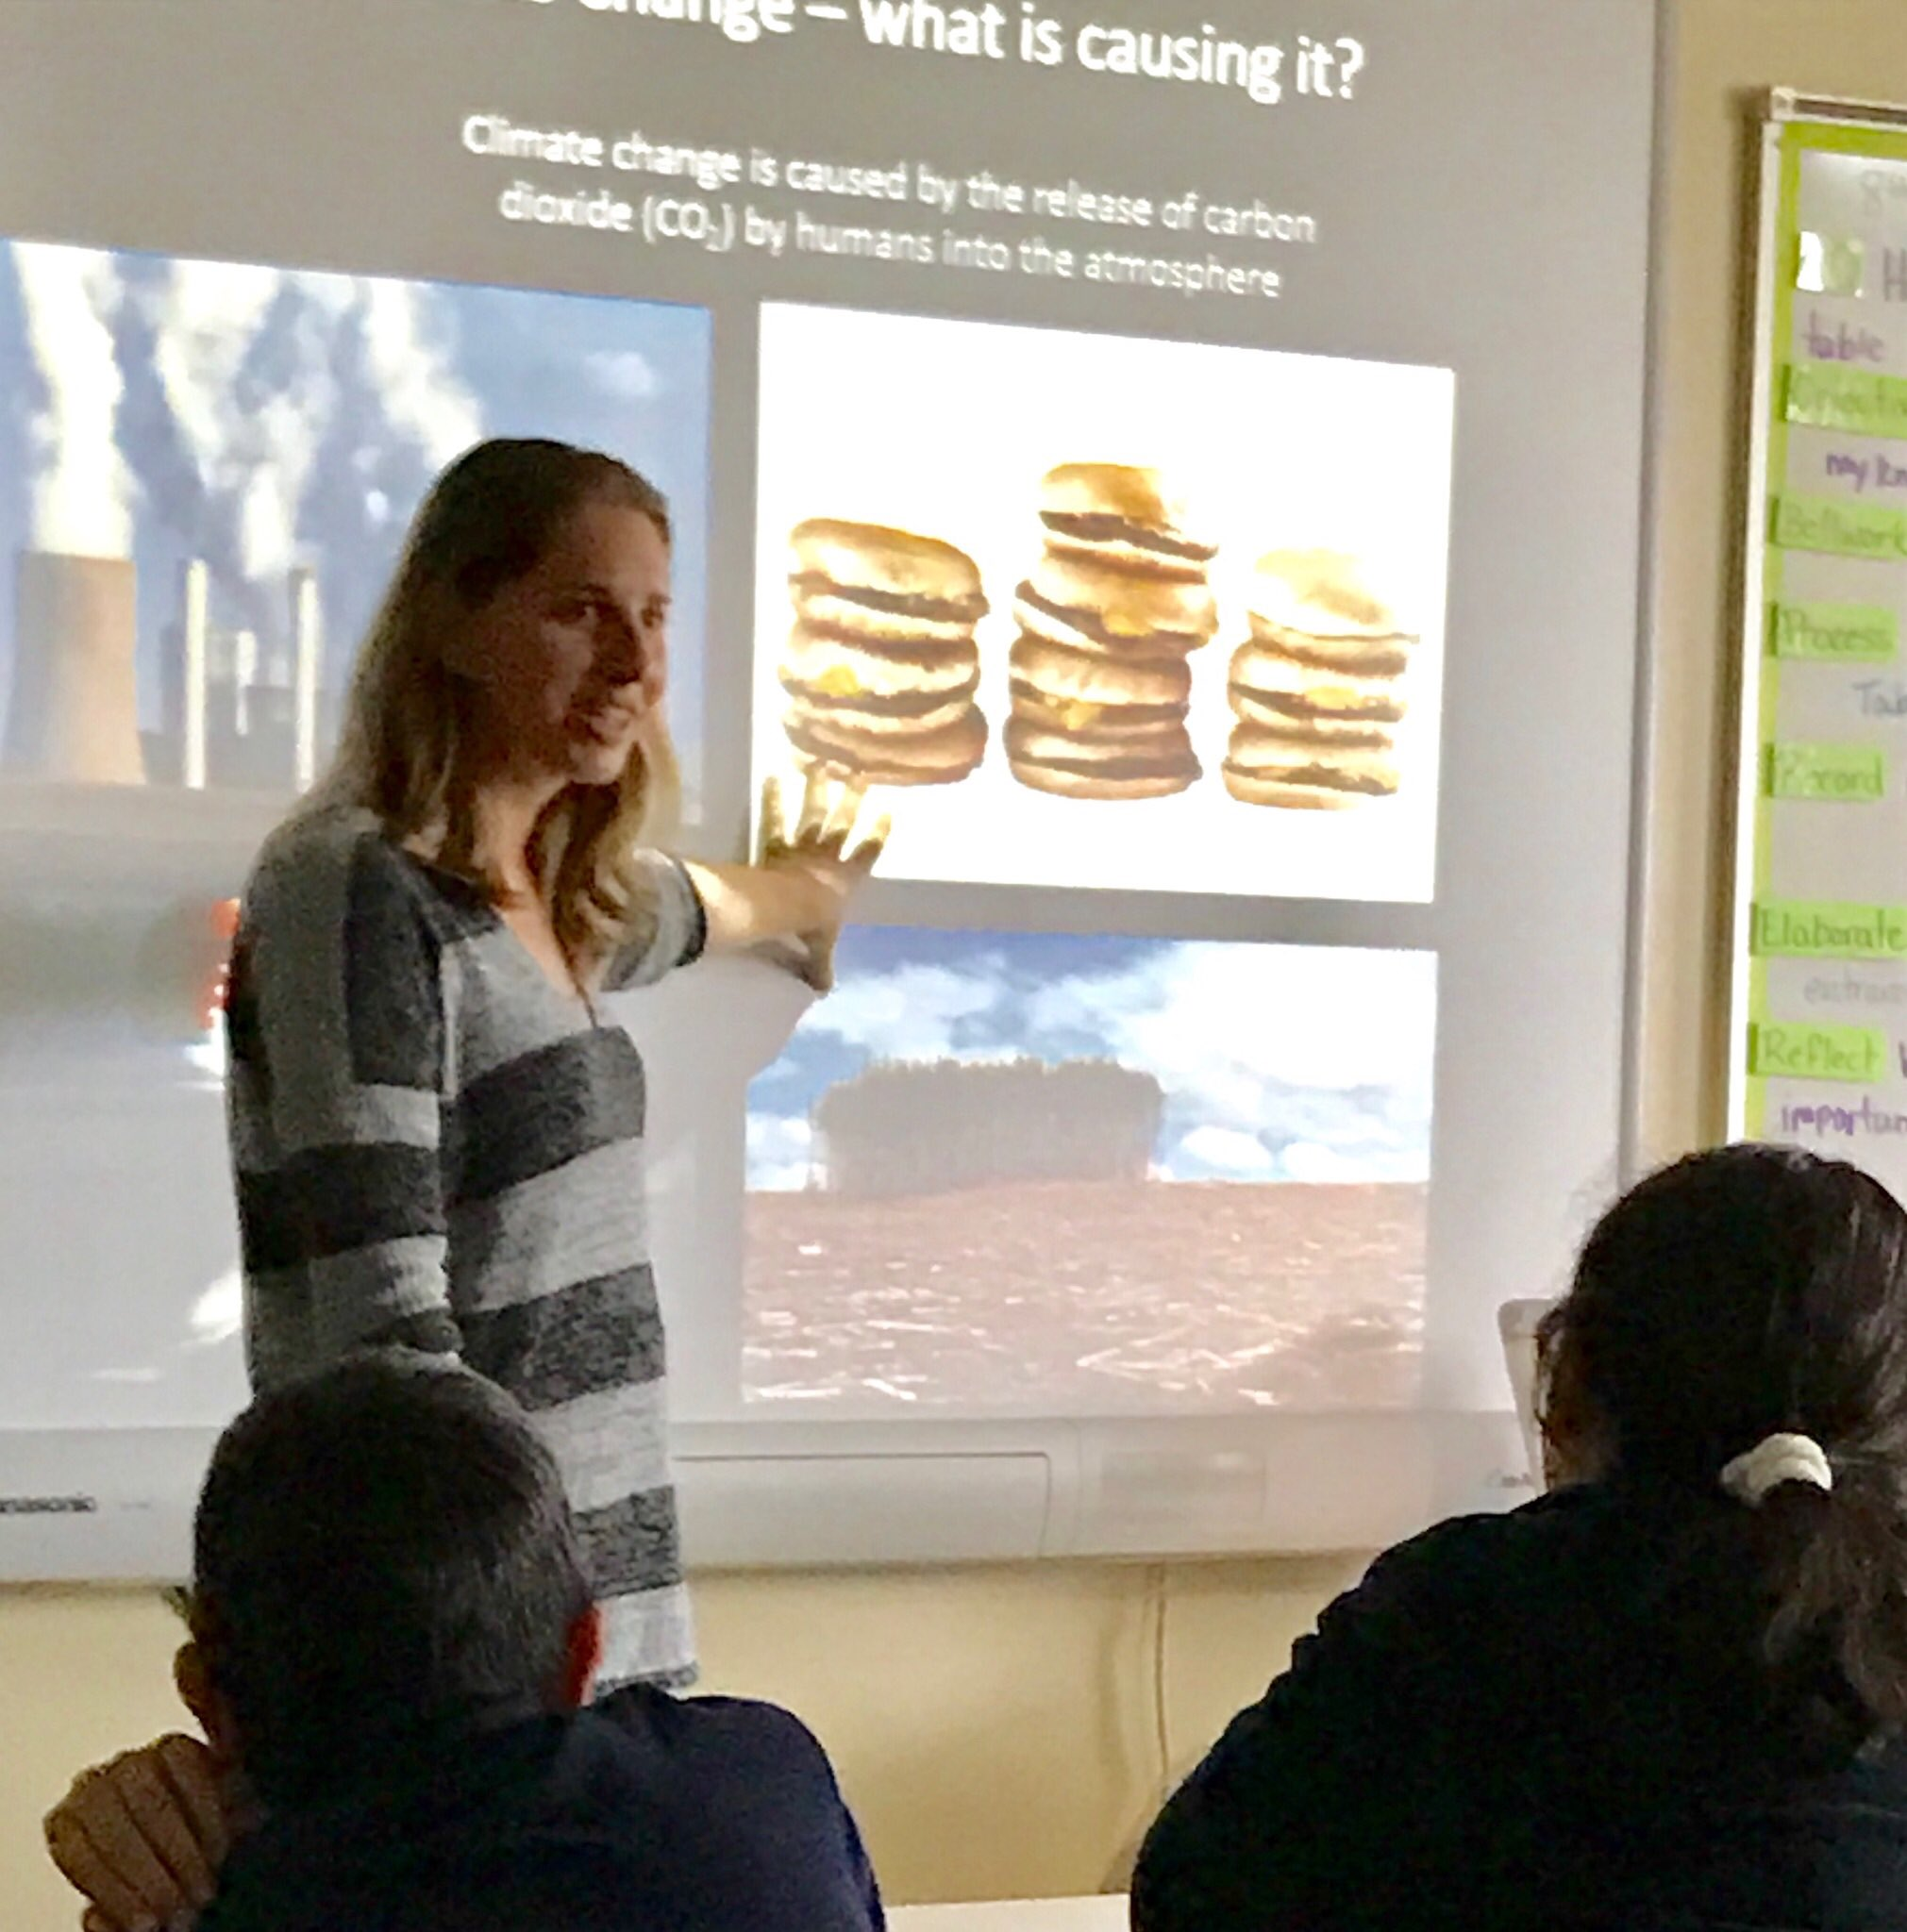 The 8th graders learned about #climateChange and my path to becoming a marine biologist #TeachInForScience #scicomm https://t.co/ZzTrsDLCO1